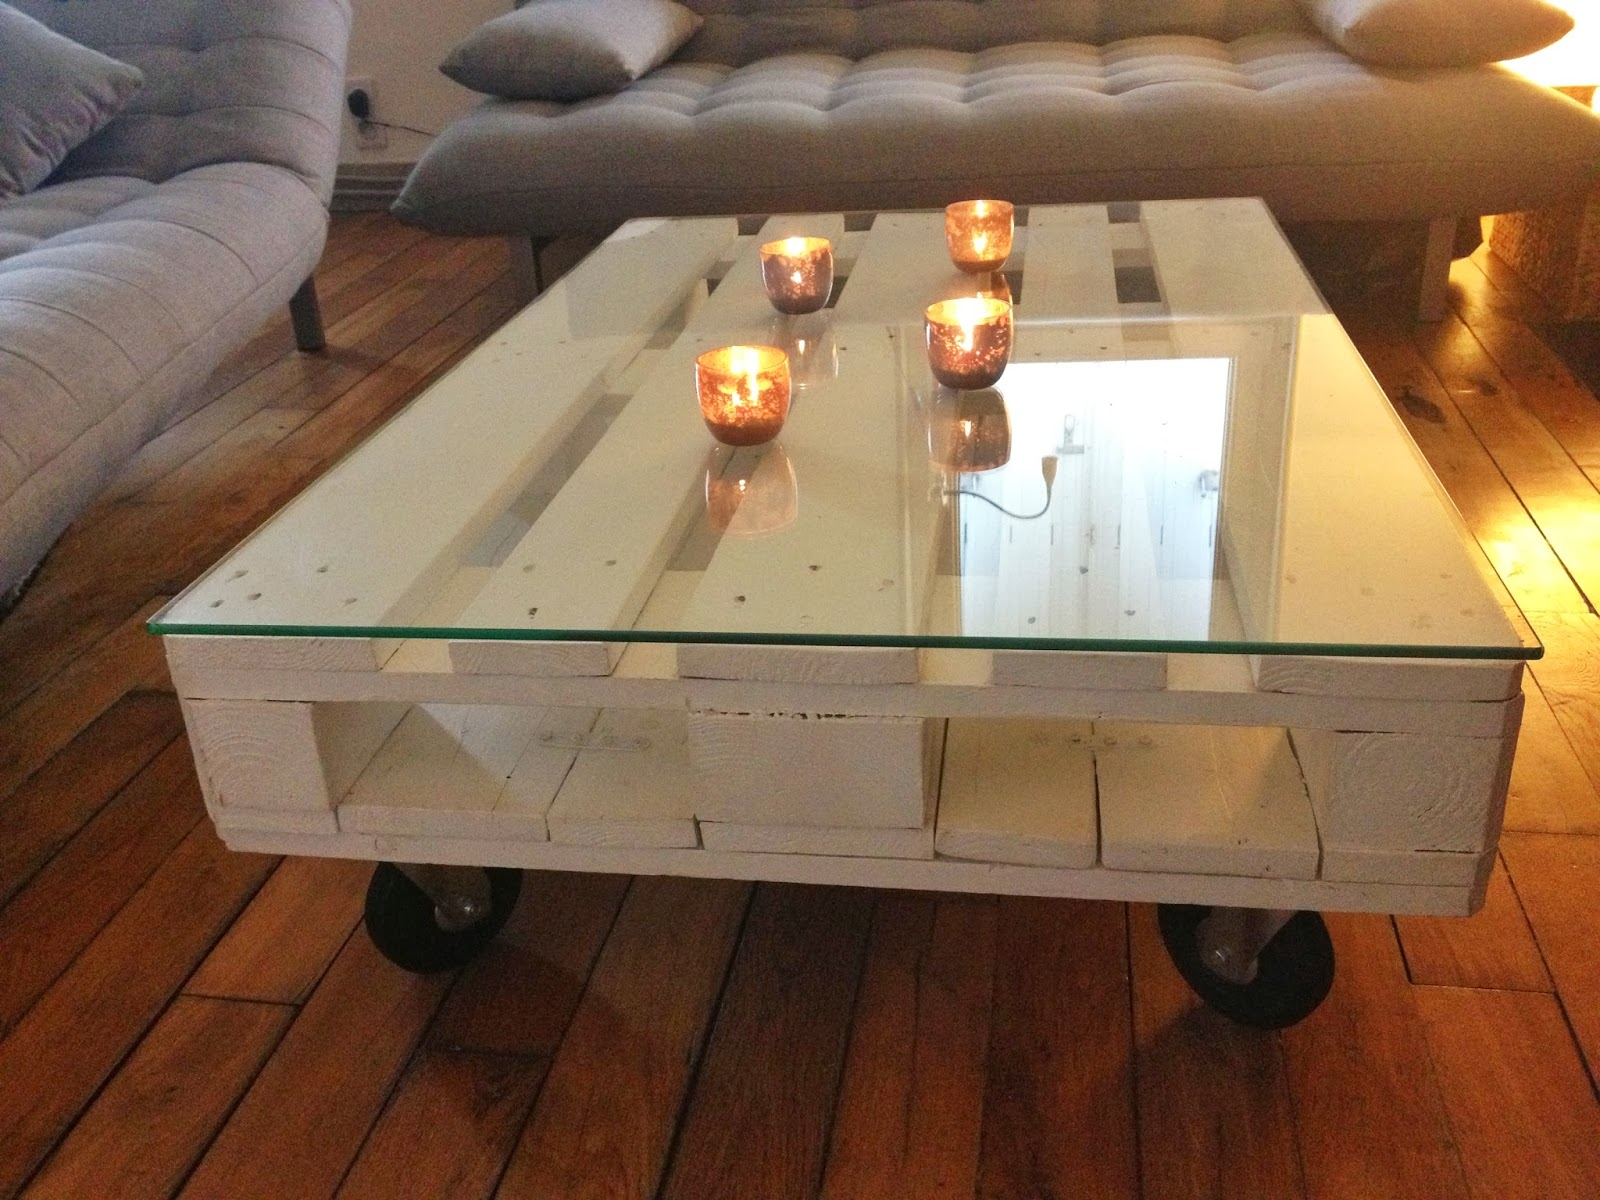 faire une table basse, fabriquer soi-meme une table, table basse palette home made